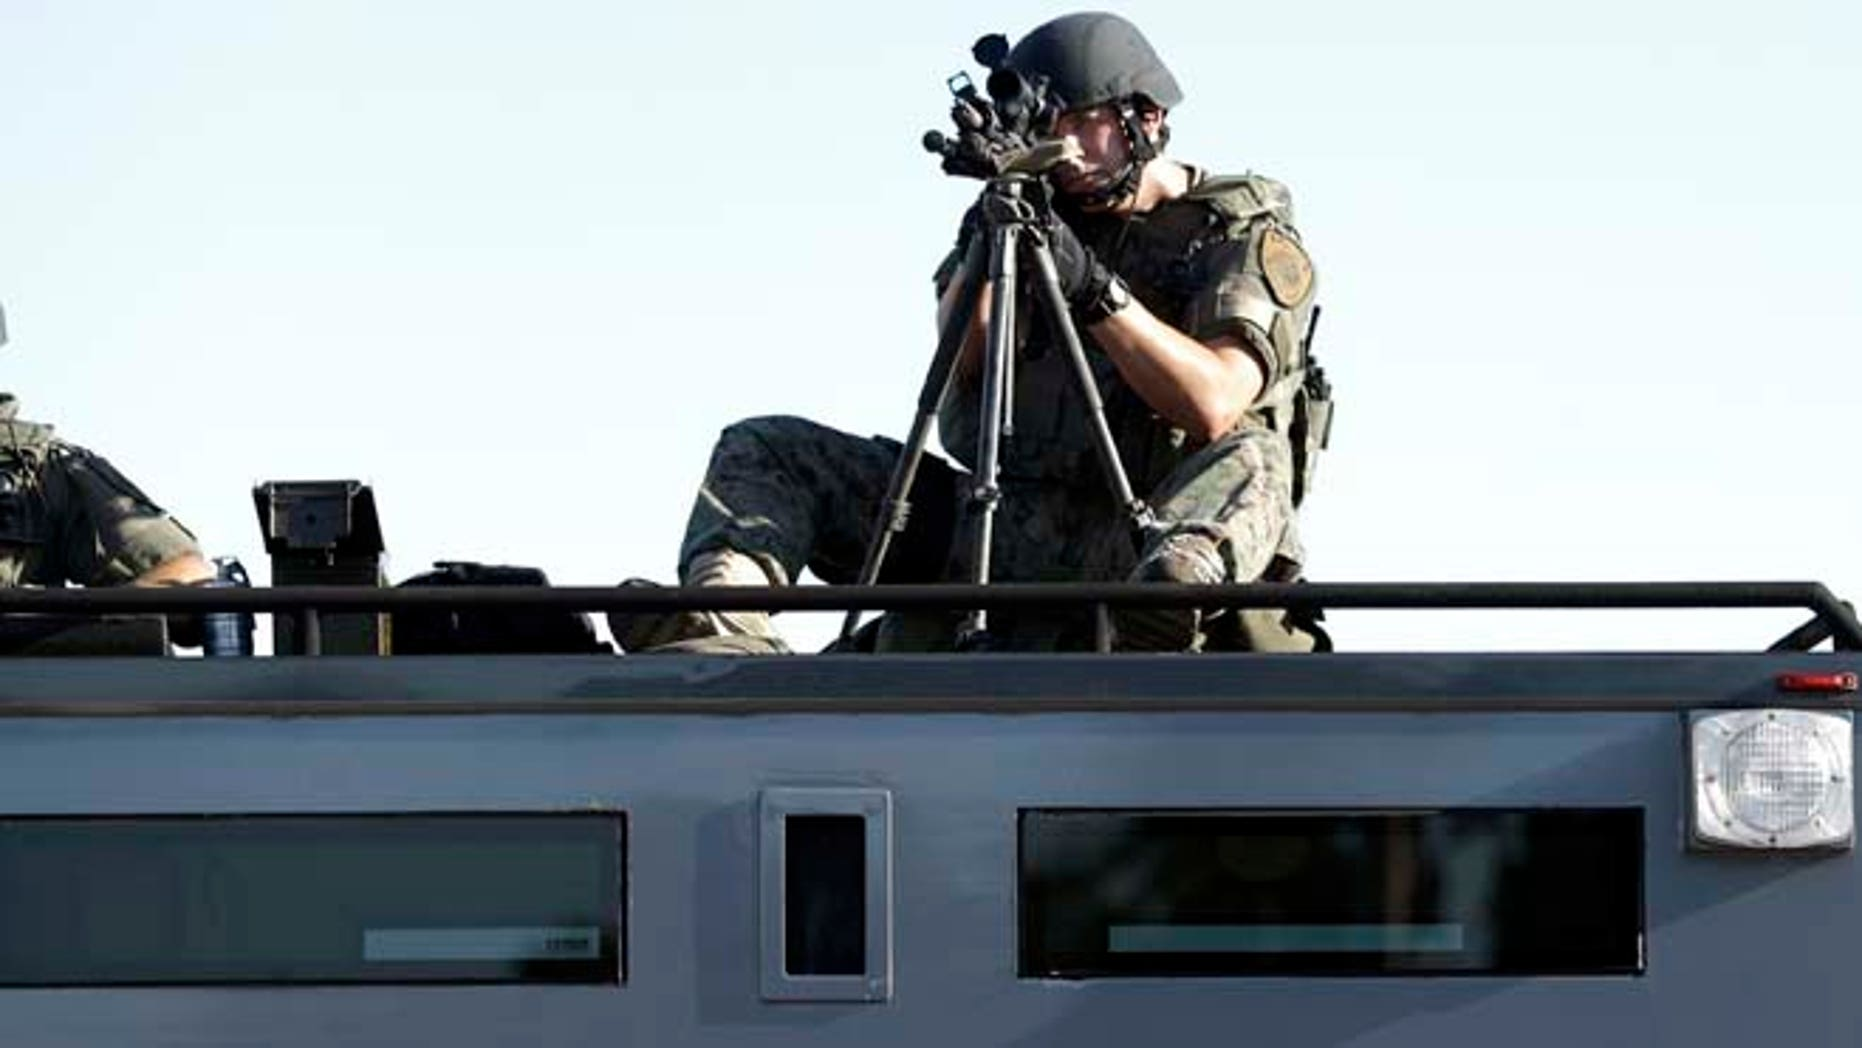 Aug. 13, 2014: A member of the St. Louis County Police Department trains his weapon on a relatively small group of protesters in Ferguson, Mo.